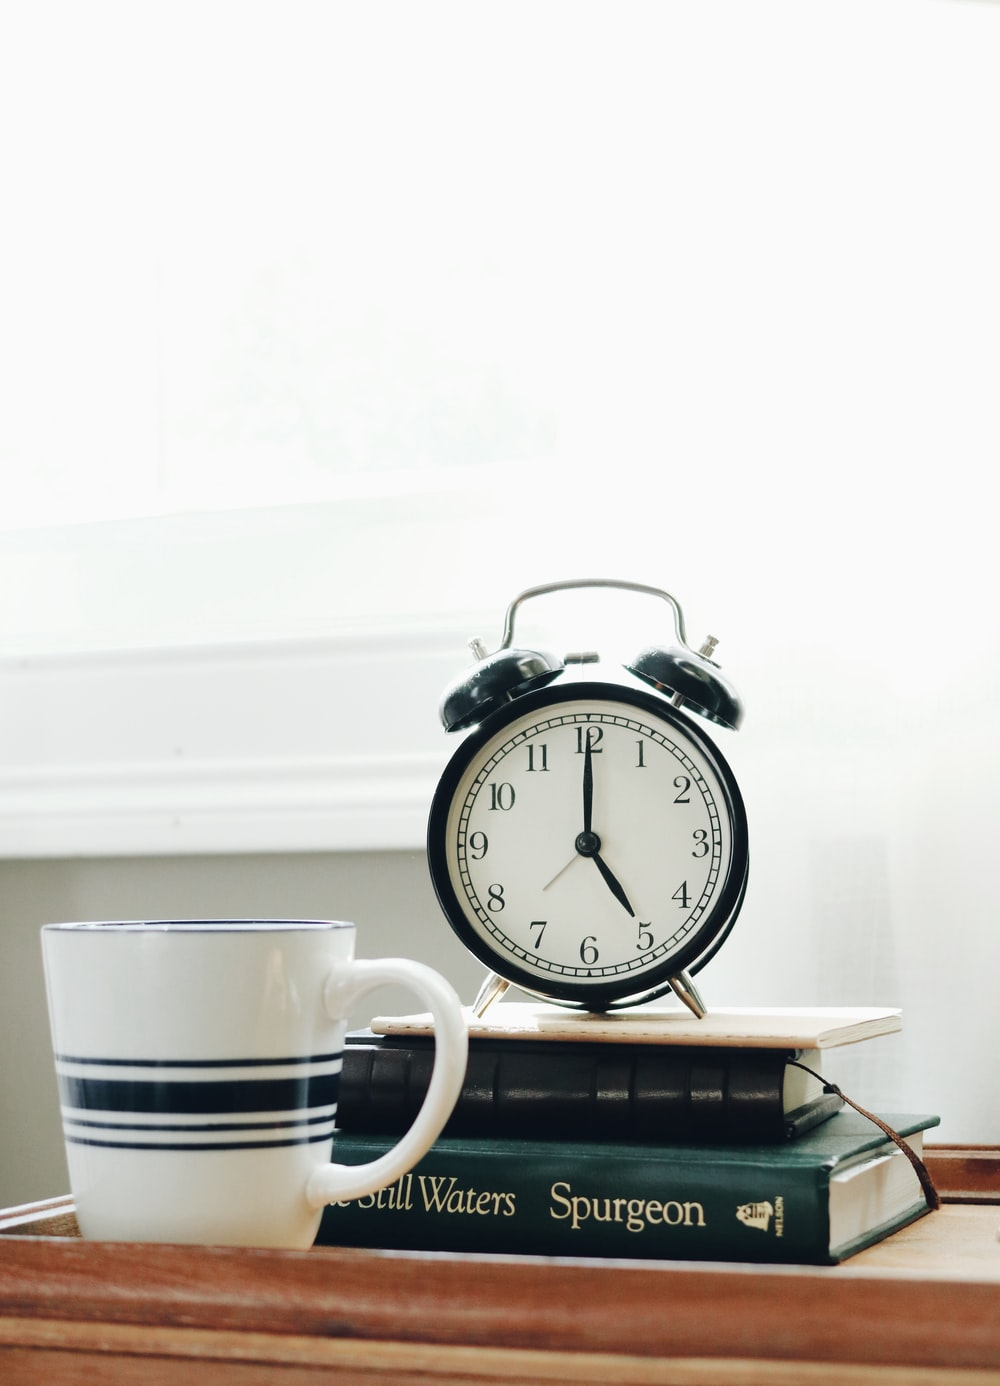 white ceramic mug beside white and black analog alarm clock